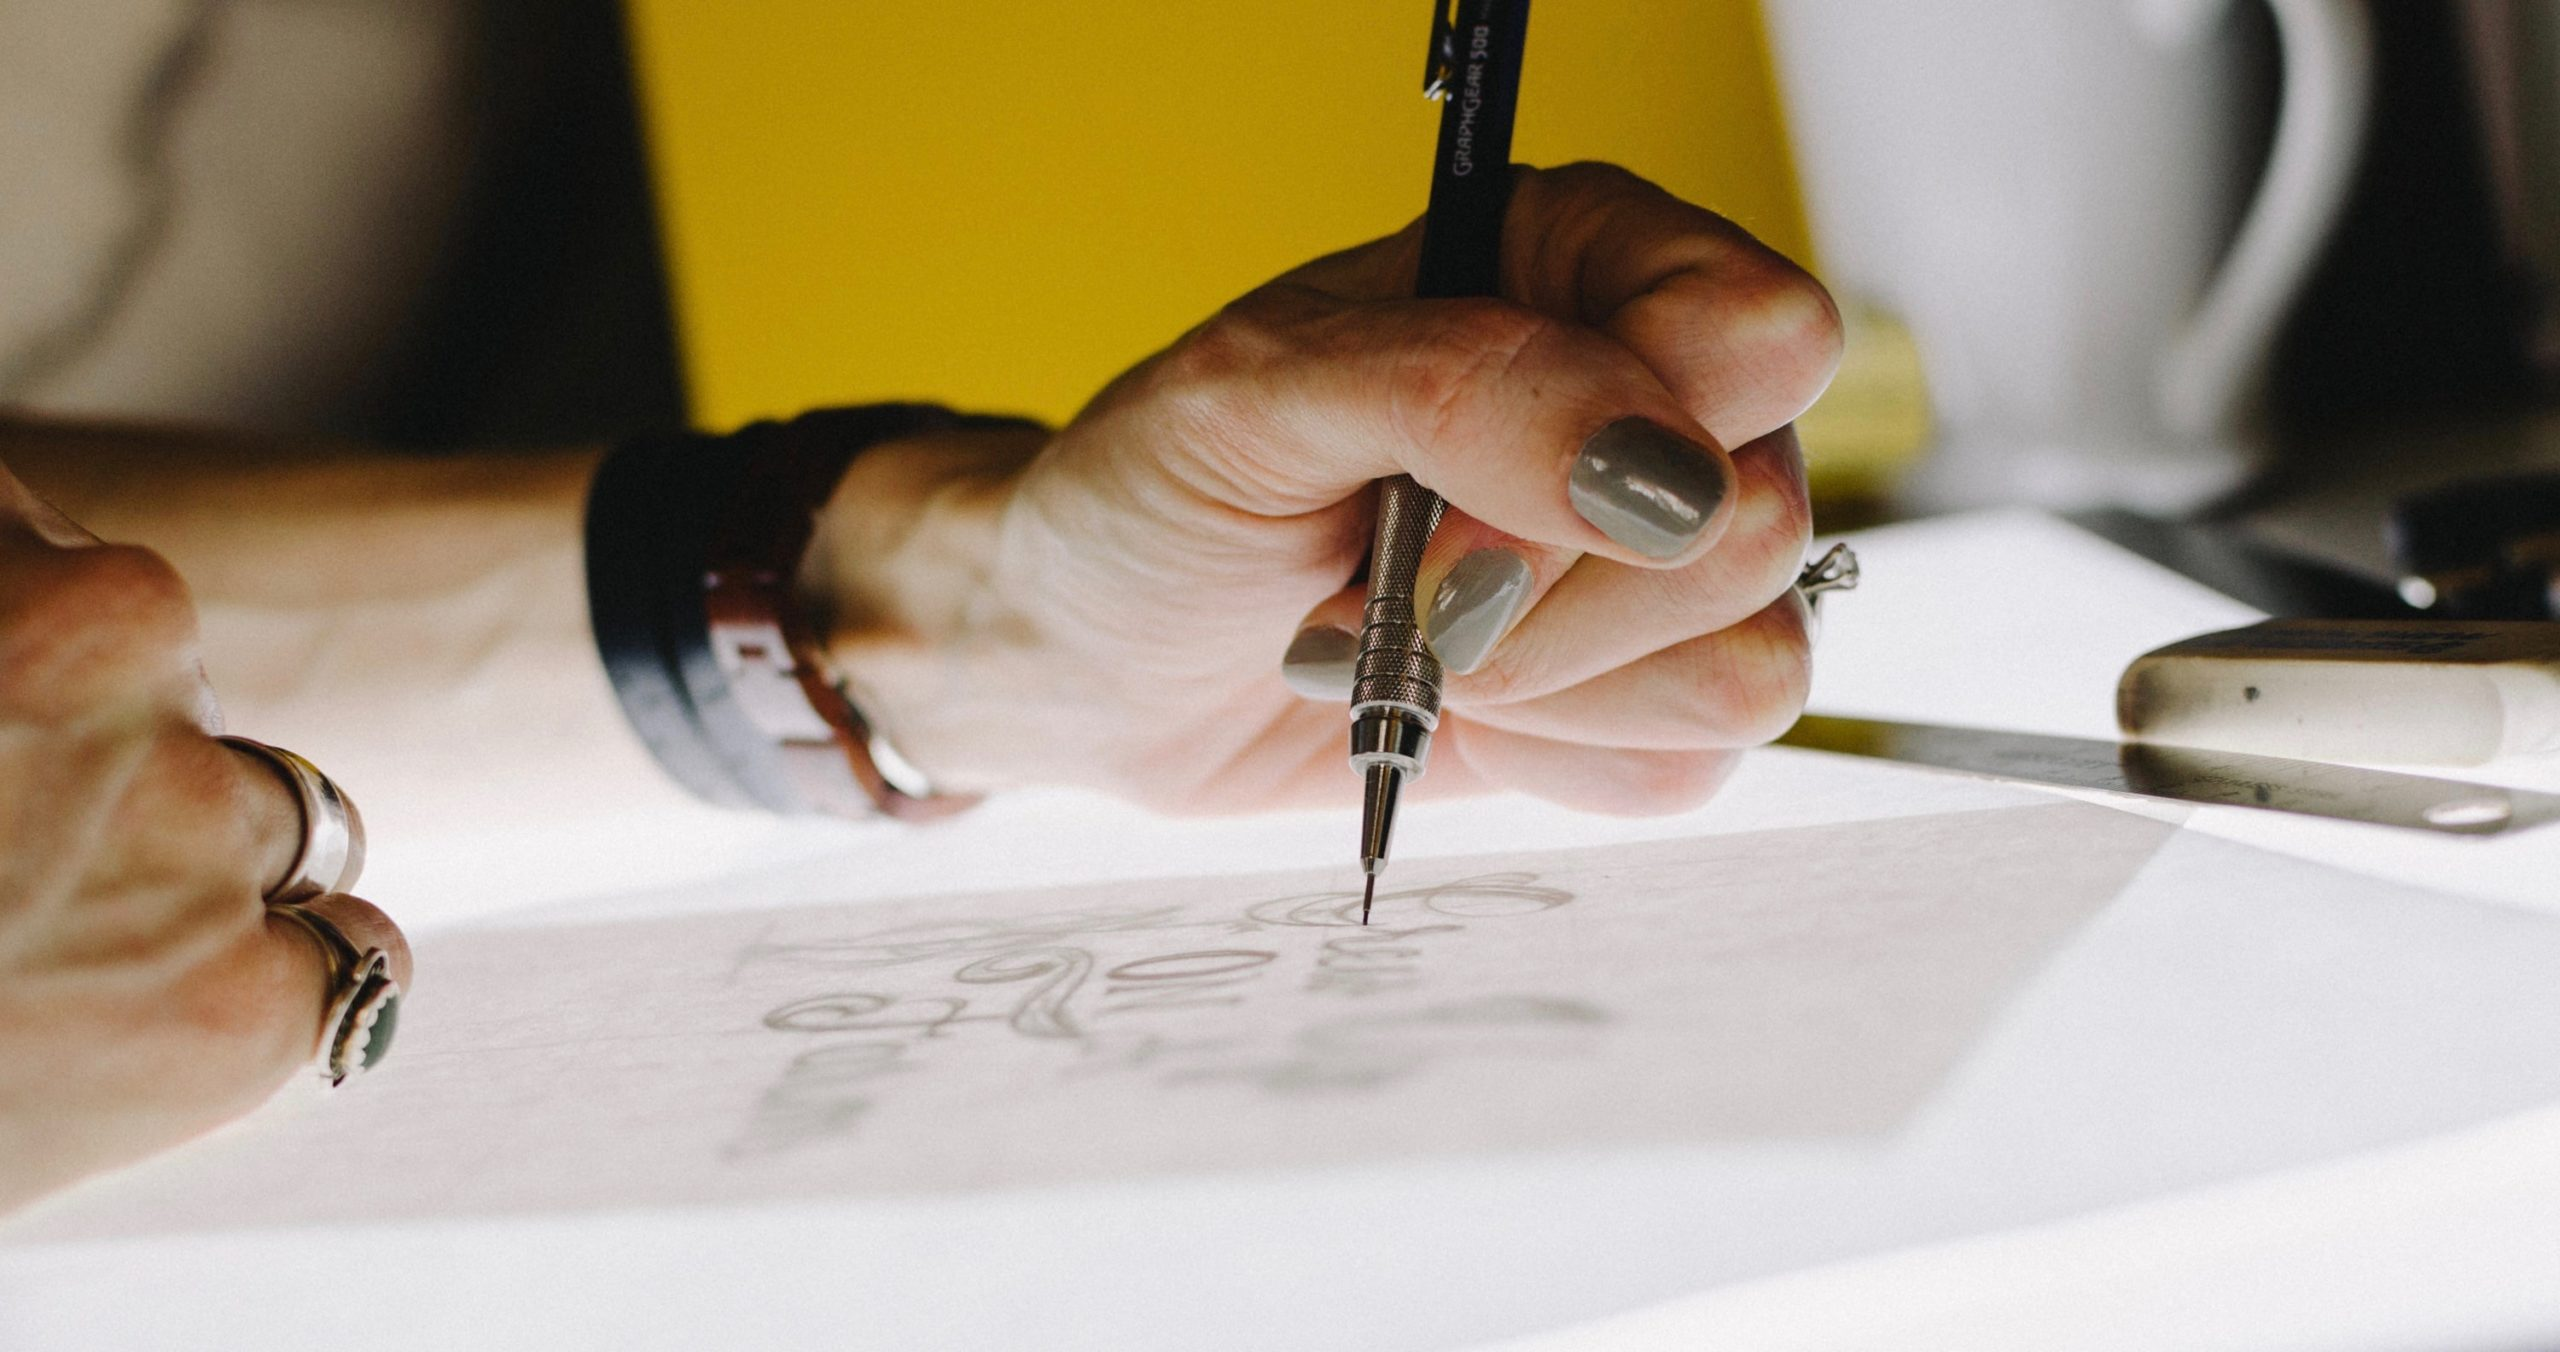 Image of person drawing